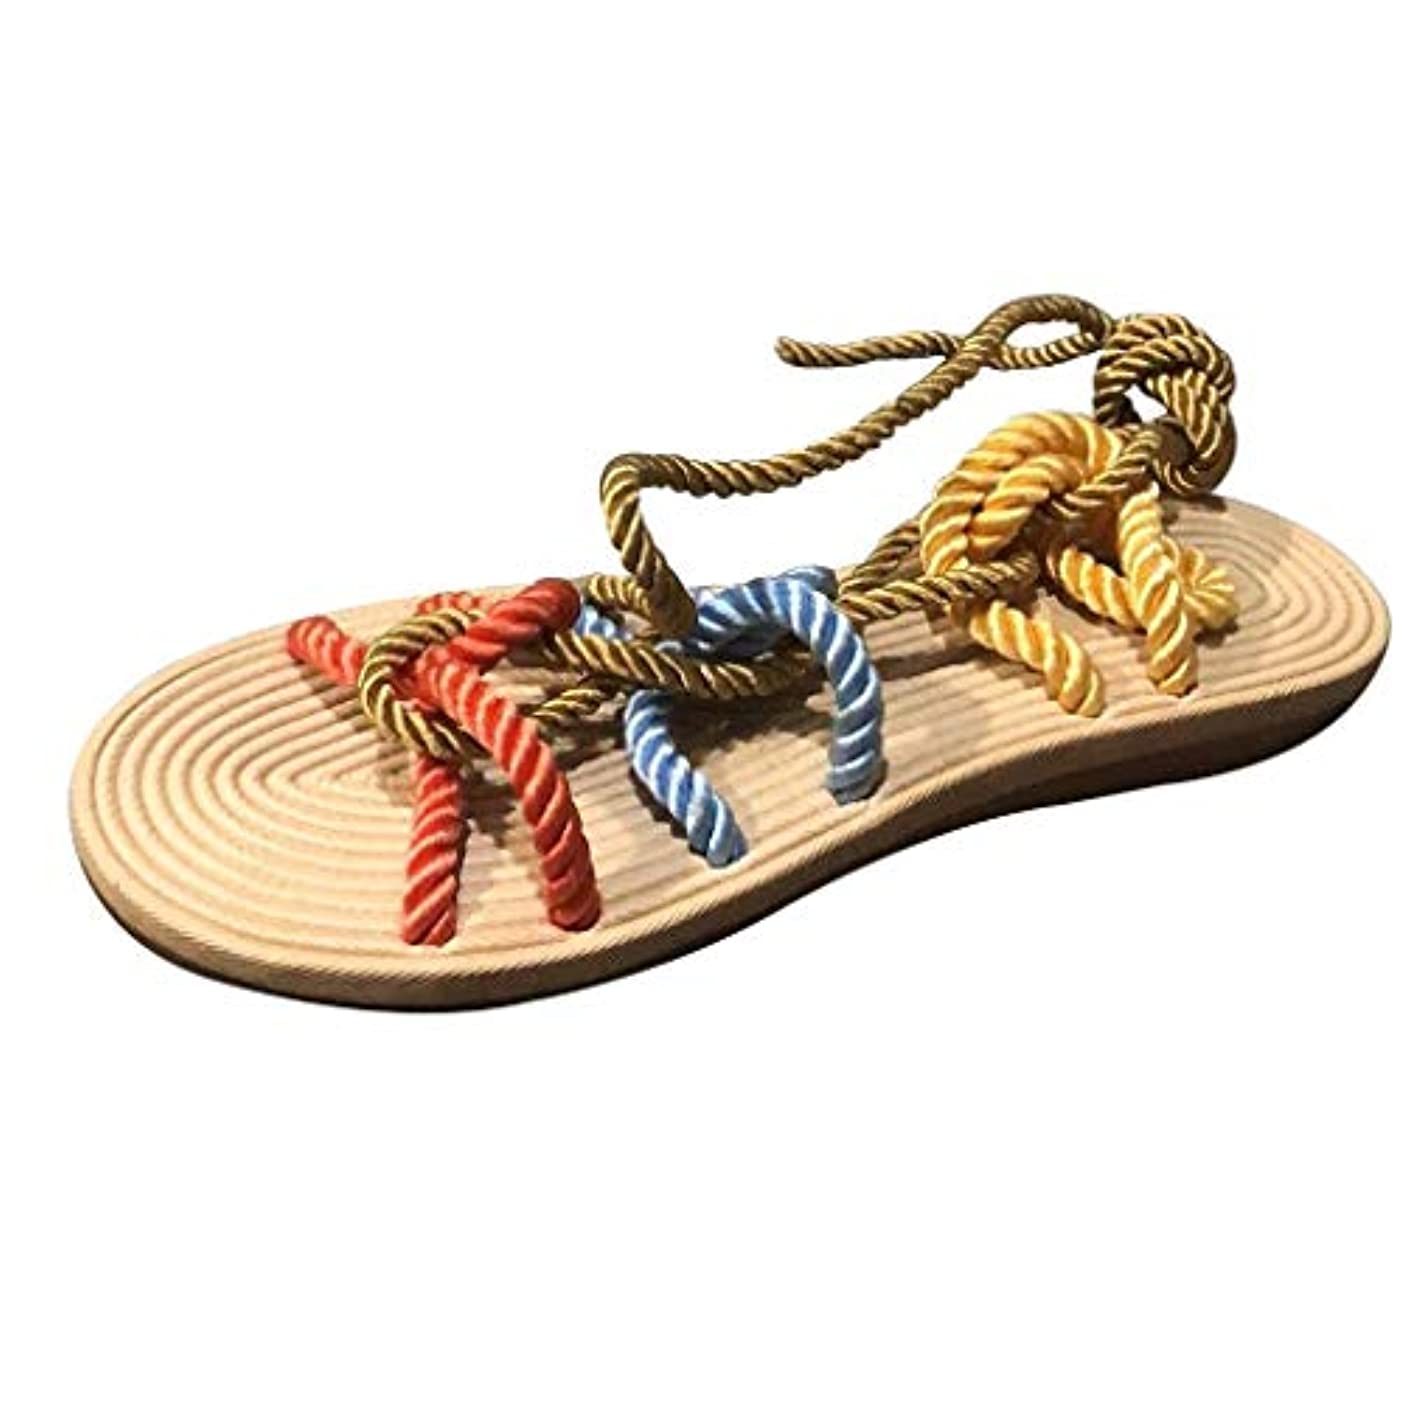 LYN Star ? Flat Sandals for Women Handmade Braided Summer Sandal Outdoor Sandal Bohemian Beaded Flip Flops Sandals